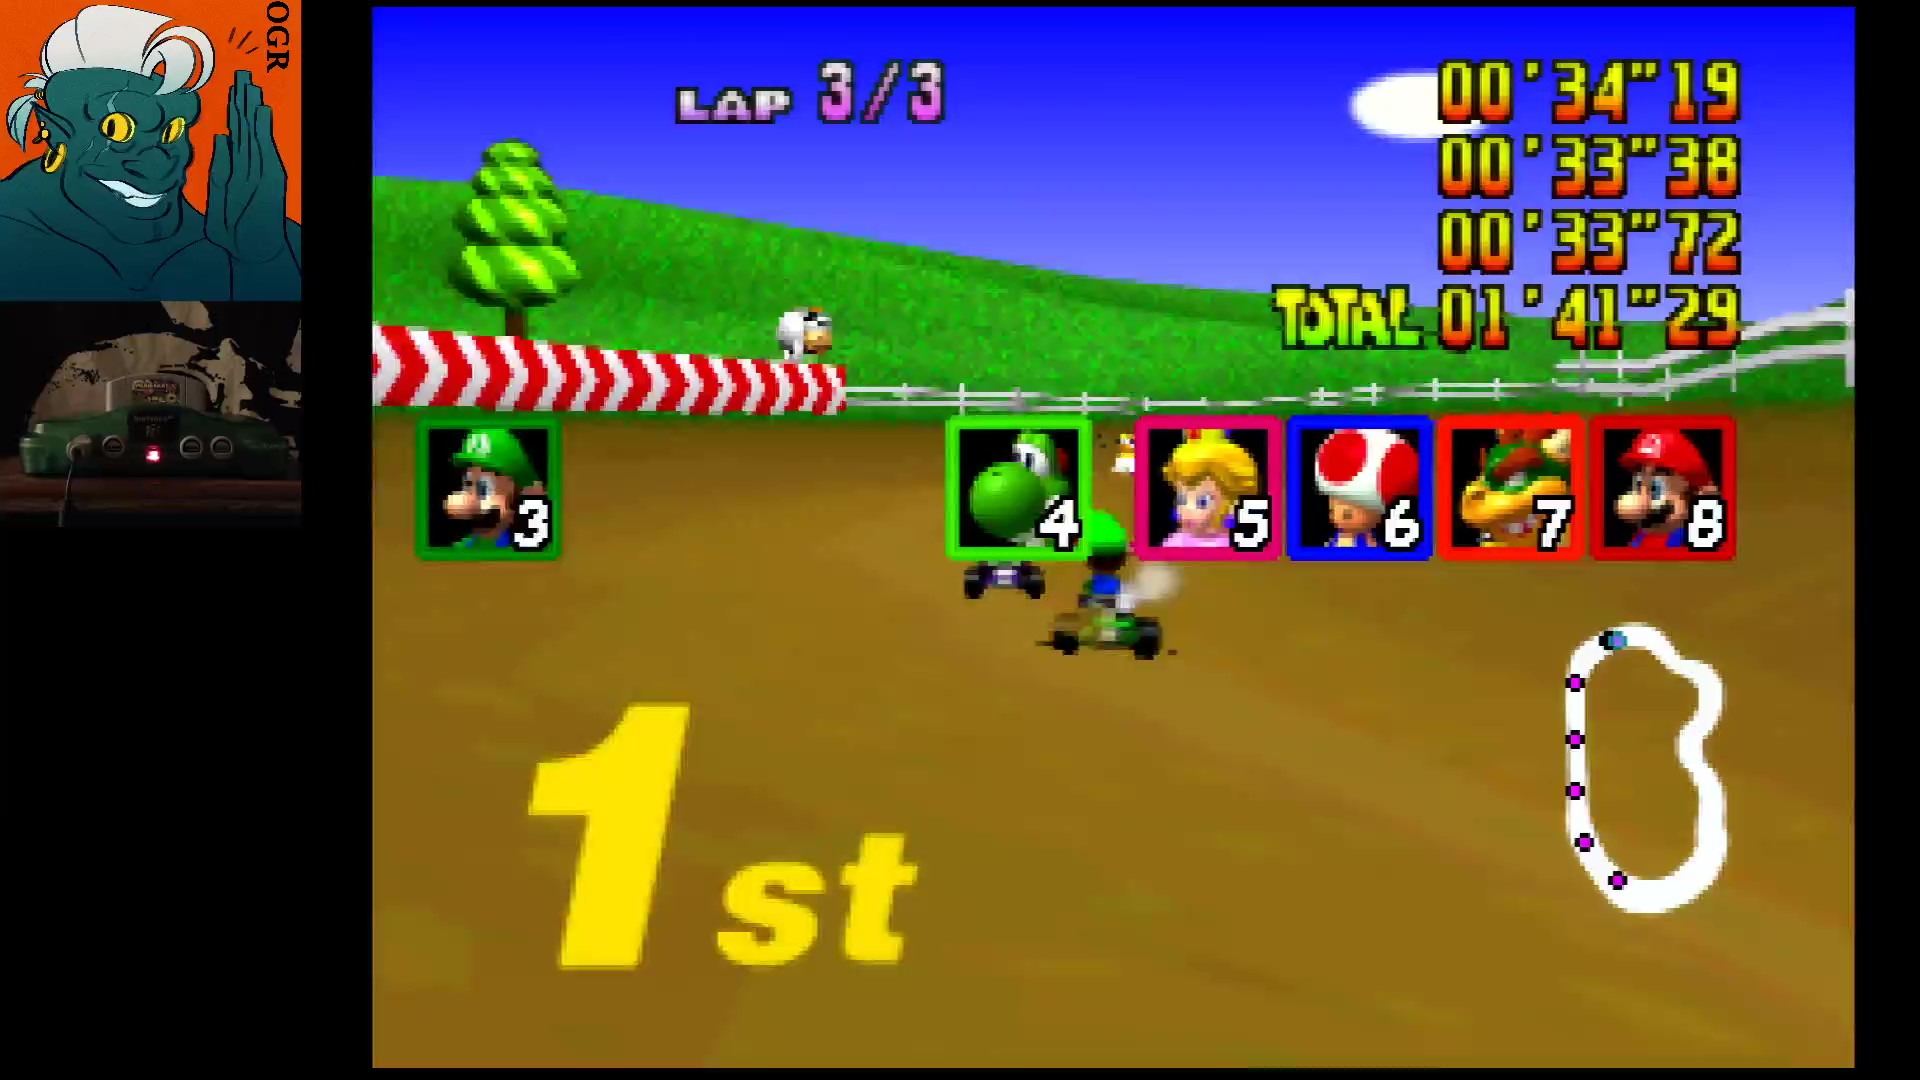 AwesomeOgre: Mario Kart 64: Moo Moo Farm [Lap Time] [50cc] (N64) 0:00:33.38 points on 2020-03-12 21:13:20